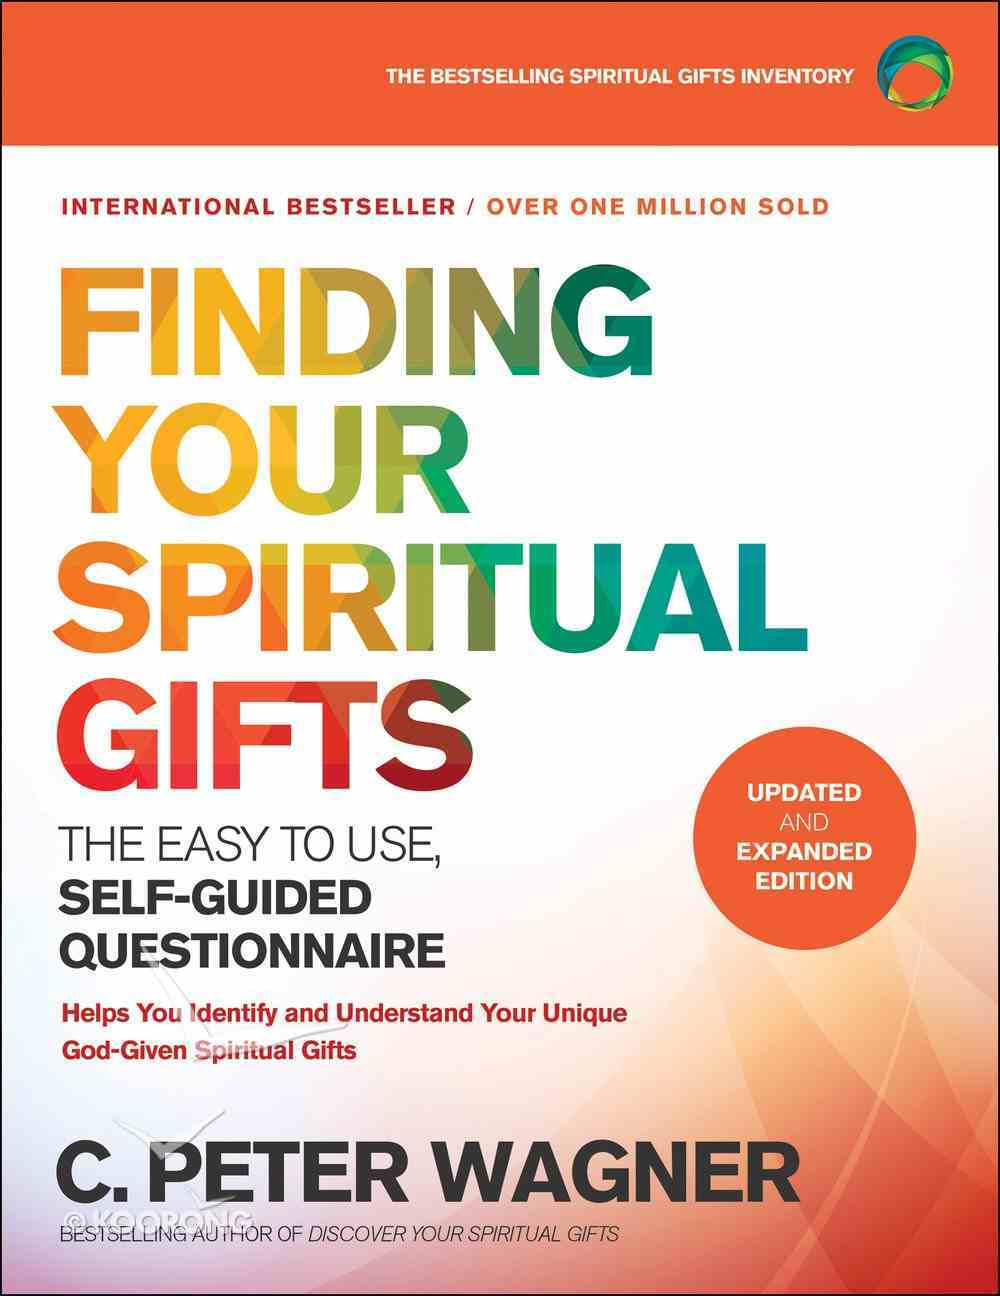 Finding Your Spiritual Gifts Questionnaire: The Easy to Use, Self-Guided Questionnaire Paperback